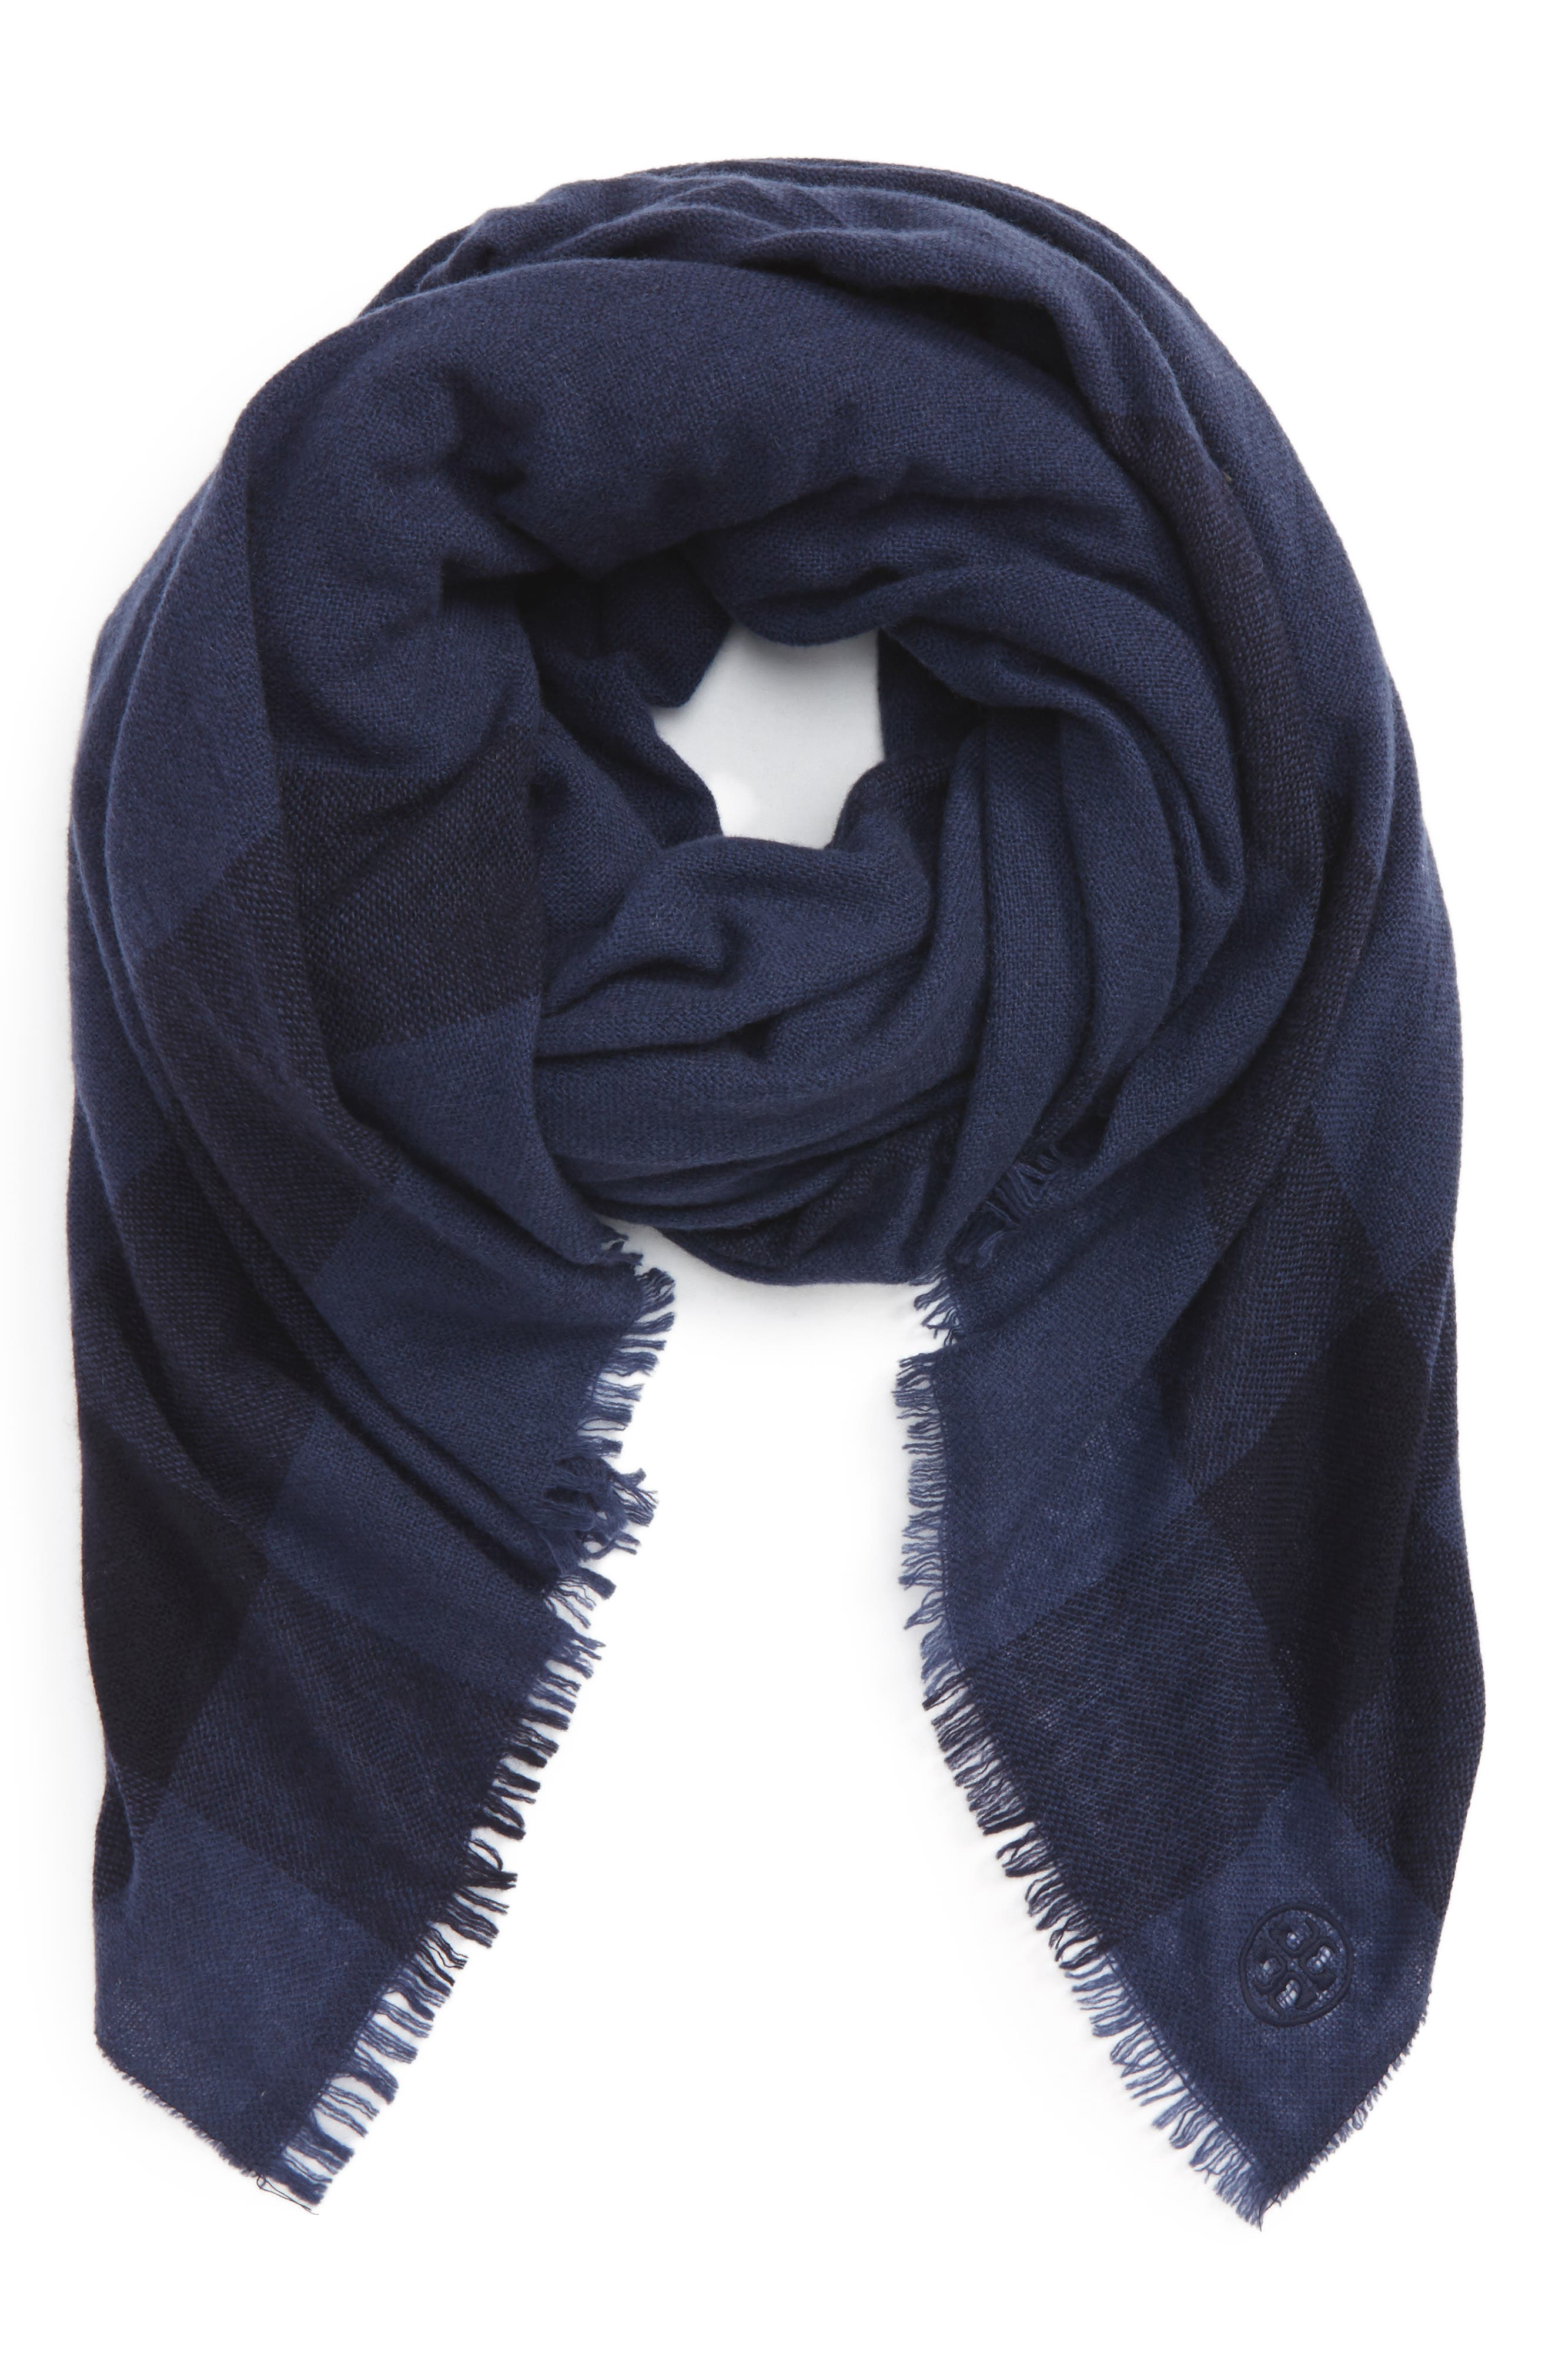 Tory Burch Check Wool & Cashmere Scarf